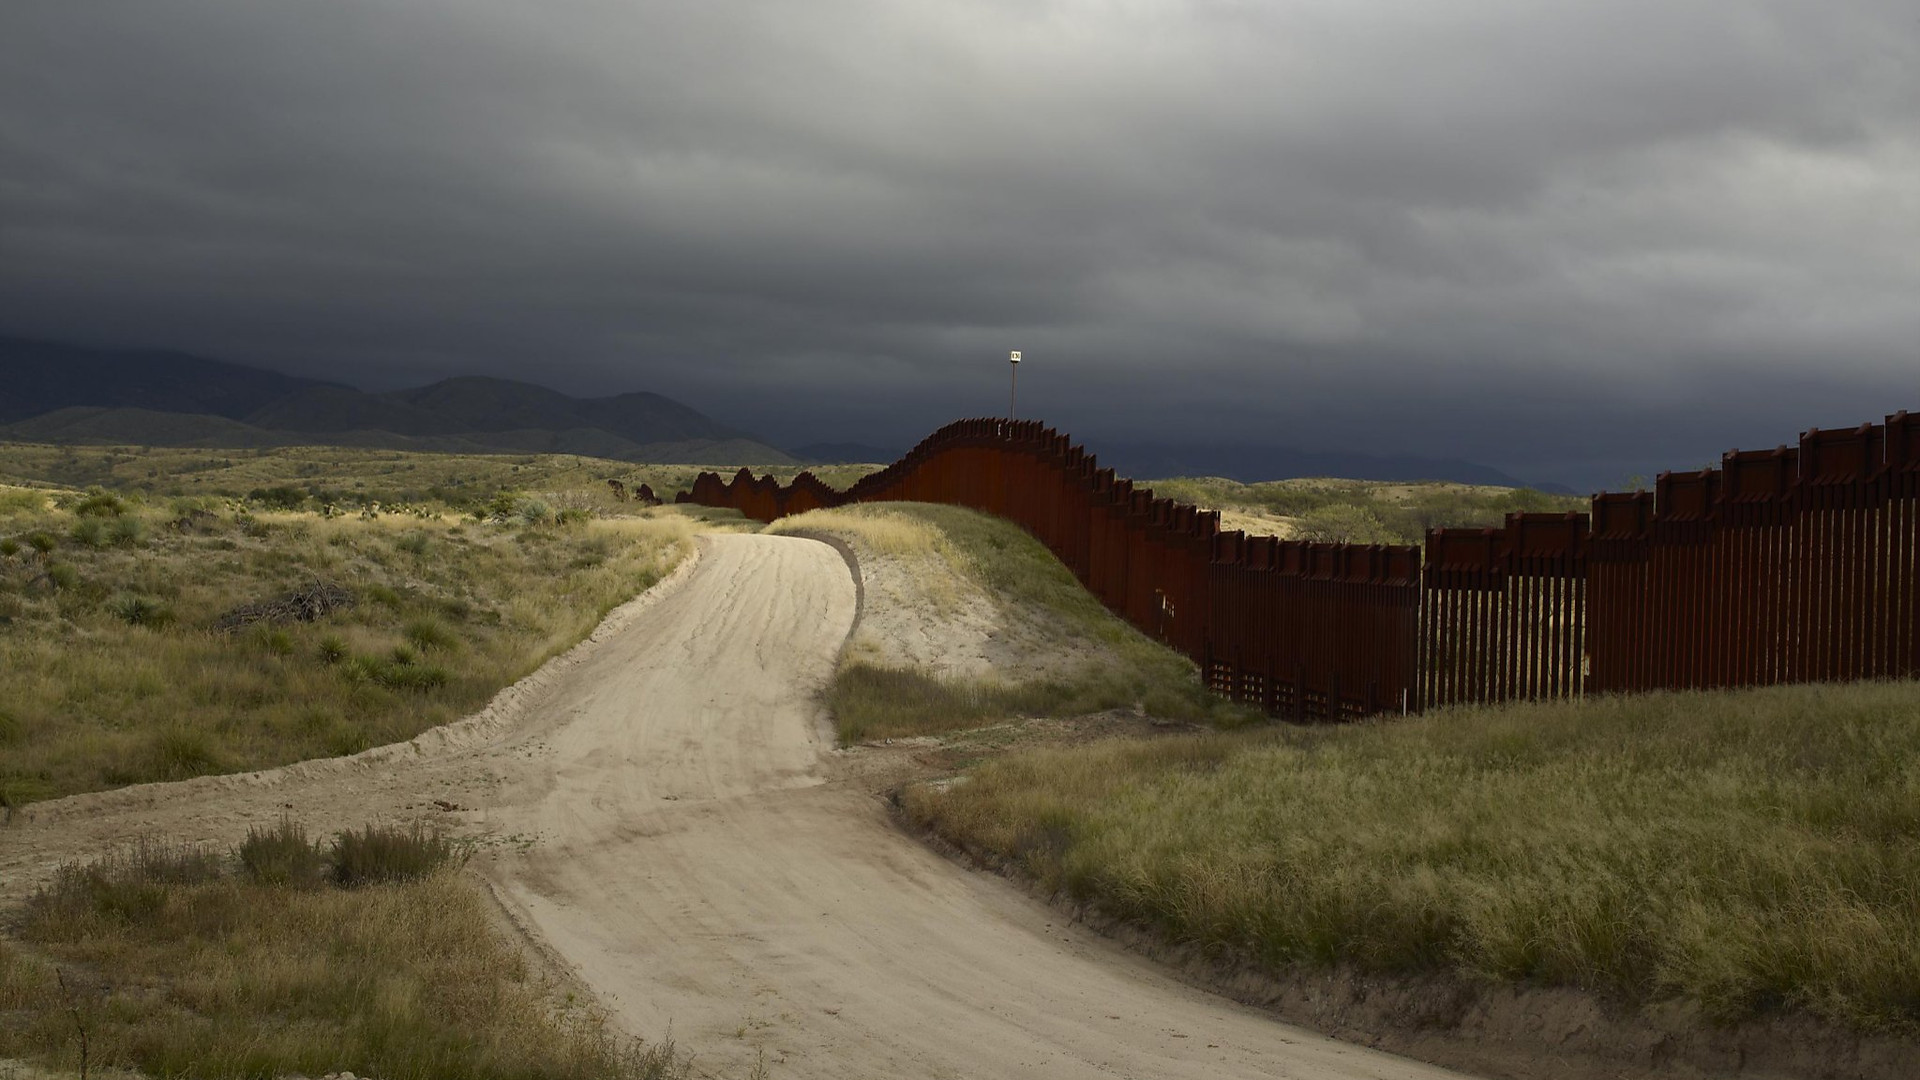 Richard Misrach, Wall, east of Nogales, Arizona / El muro, al este de Nogales, Arizona, 2014